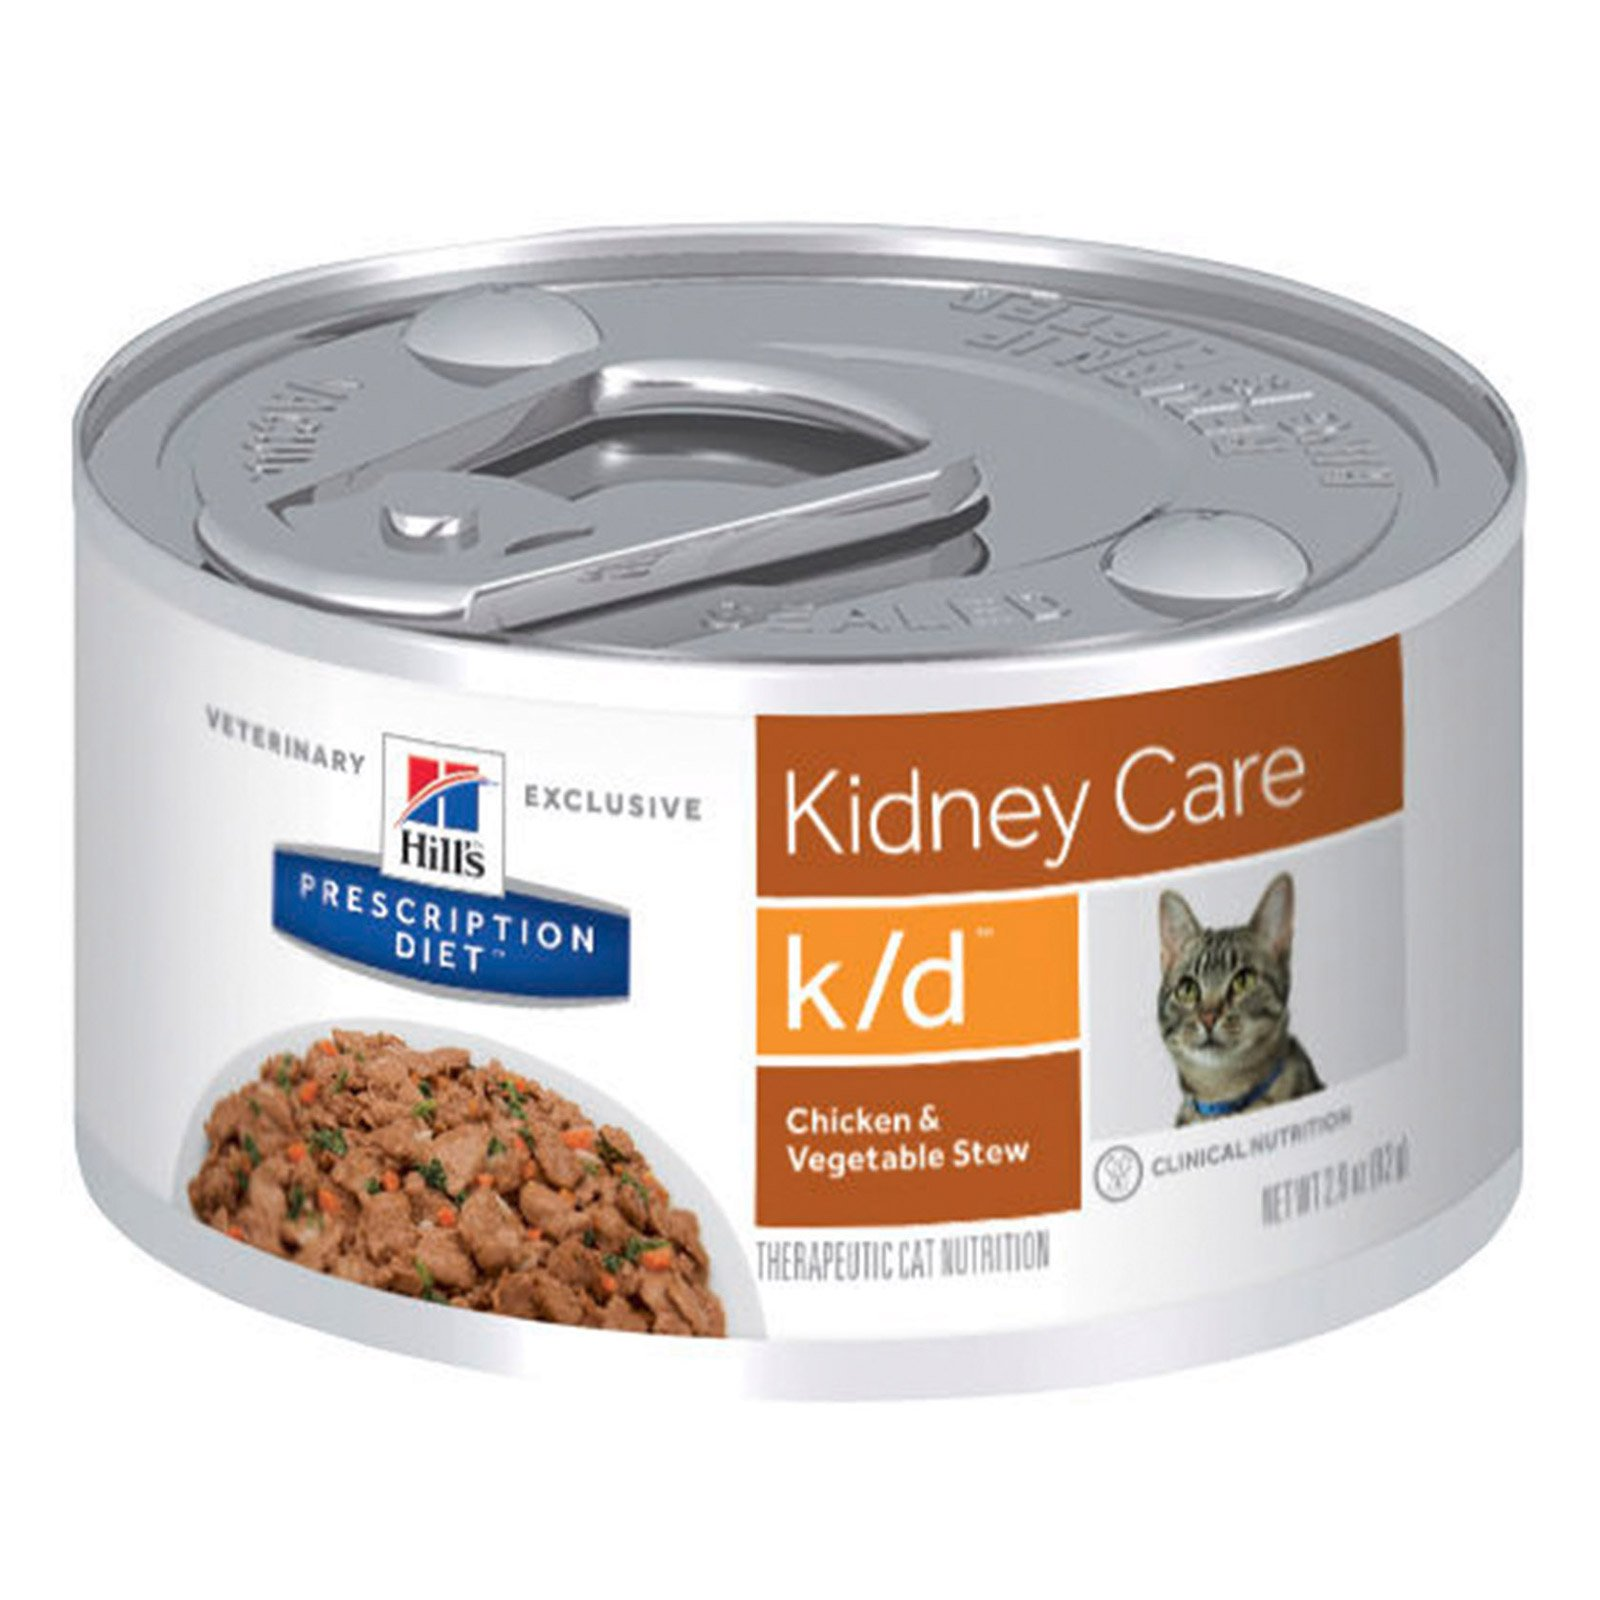 Hill's Prescription Diet k/d Kidney Care with Chicken & Vegetable Stew Canned Cat Food 82 Gm